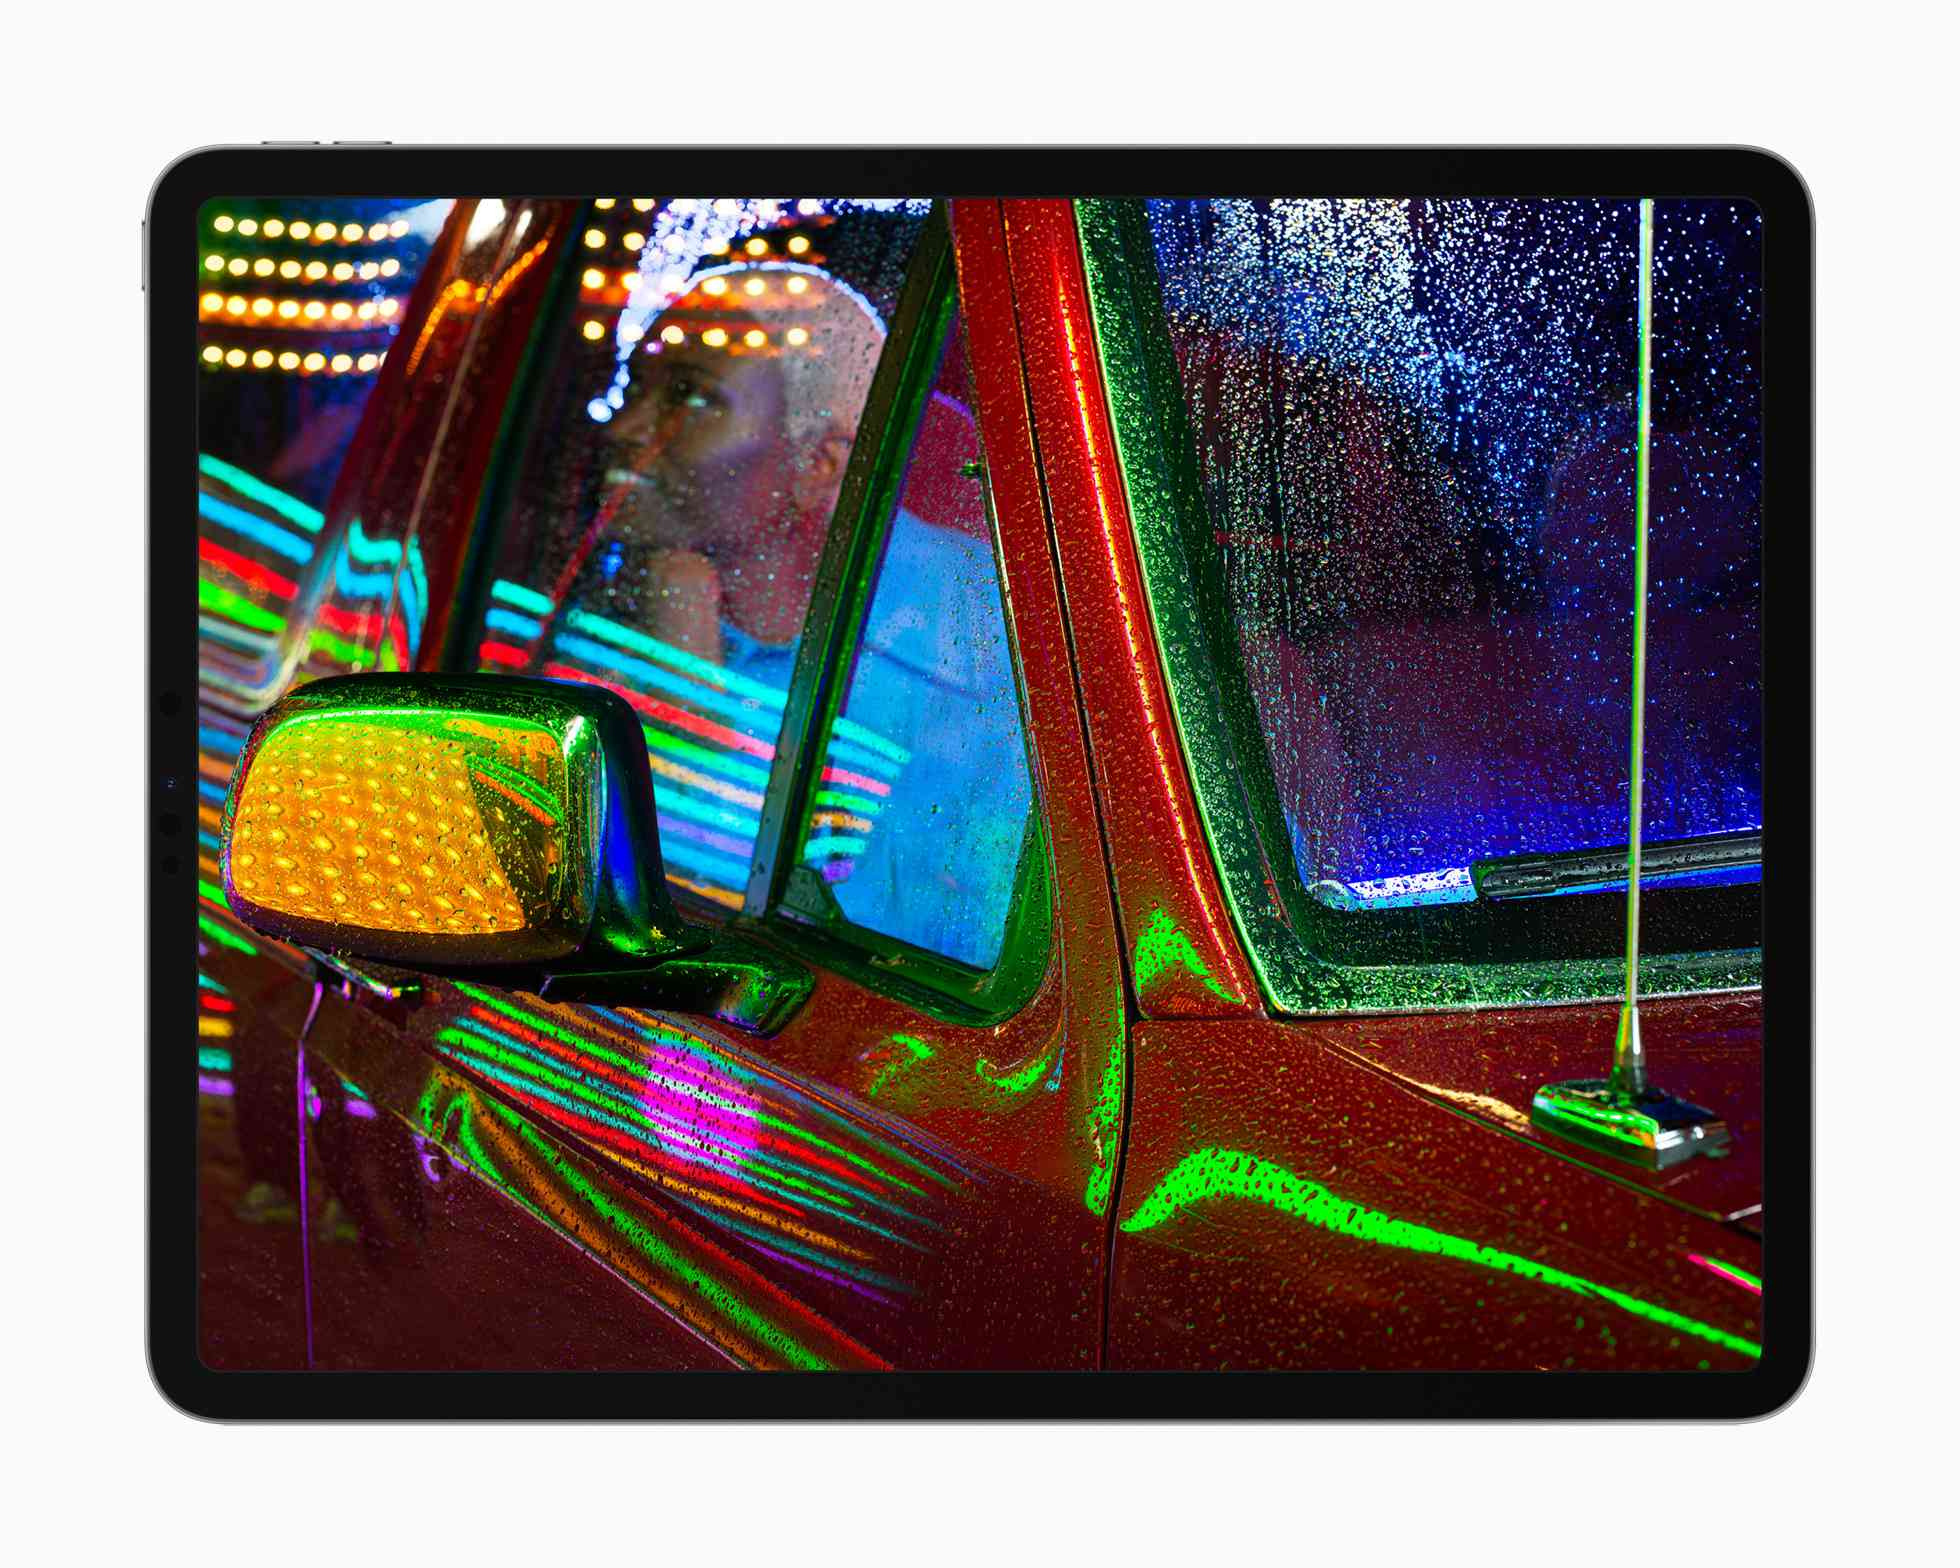 Apple iPad Pro liquidXDR display showing a photo of someone inside a pickup truck with neon lights reflecting off the metal and glass.